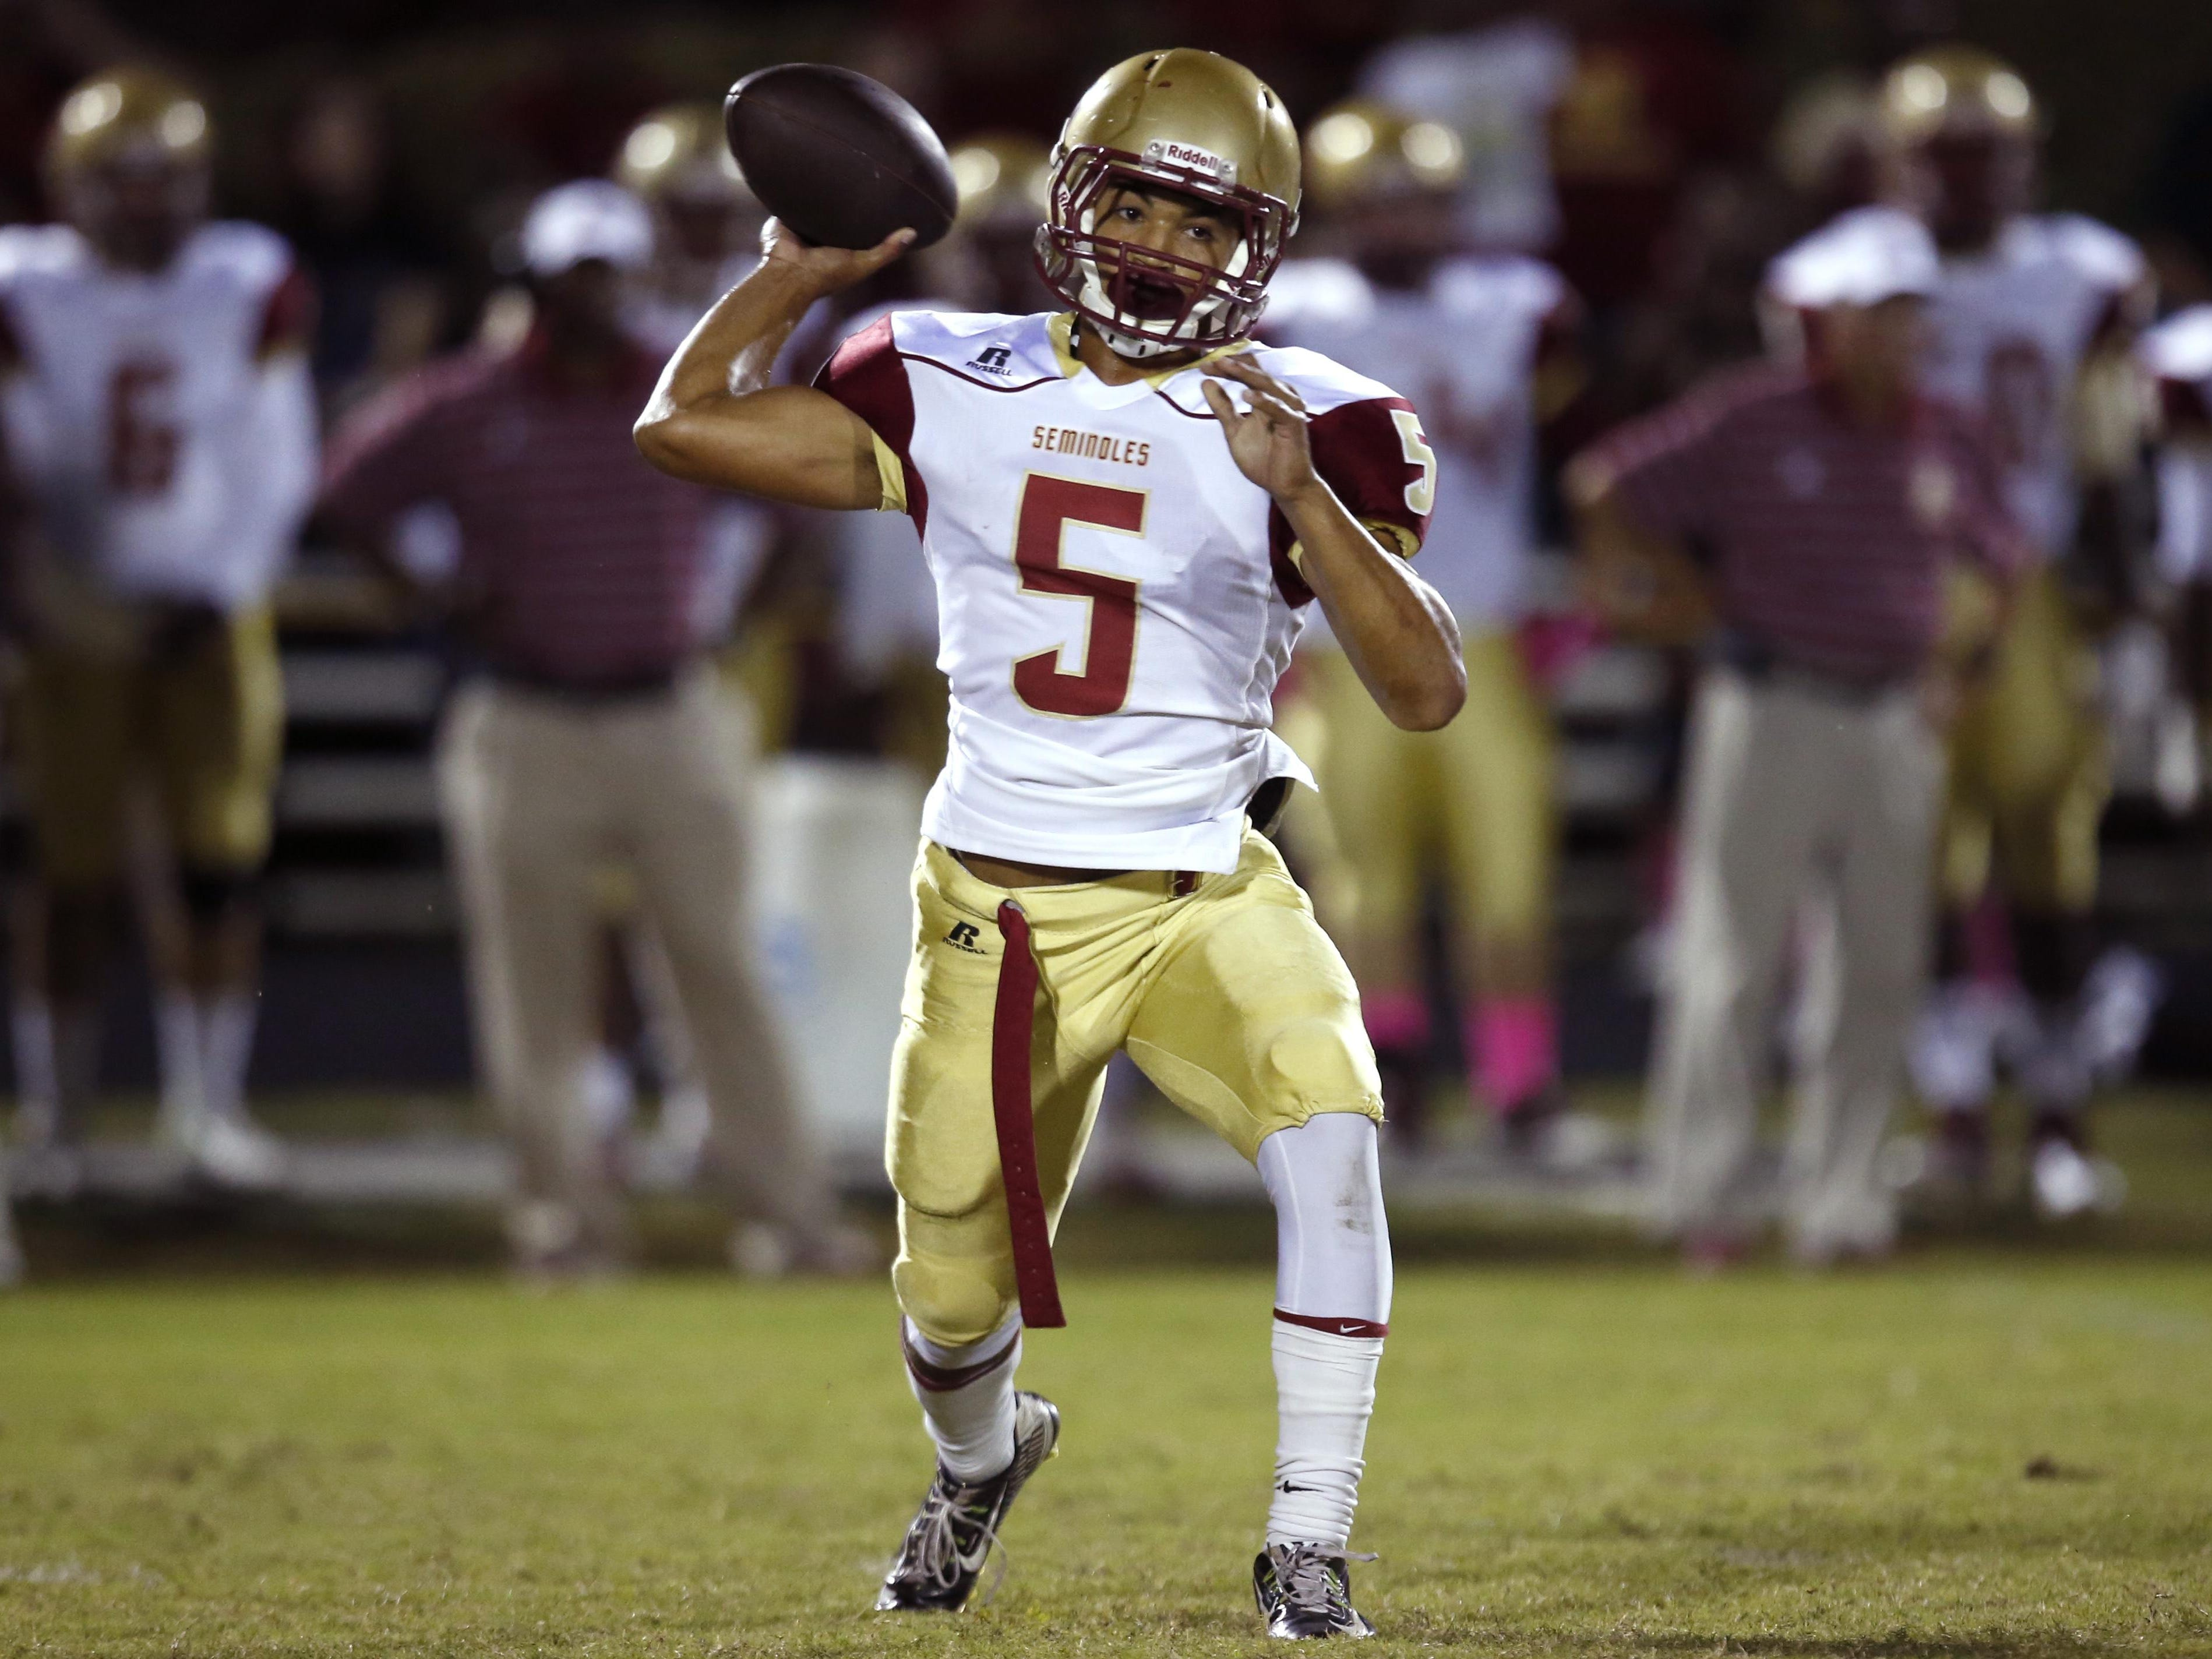 Florida High's Isaiah Hill throws a pass against NFC during their game on Friday. Hill threw 4 touchdowns on the night and ran for another score in overtime.